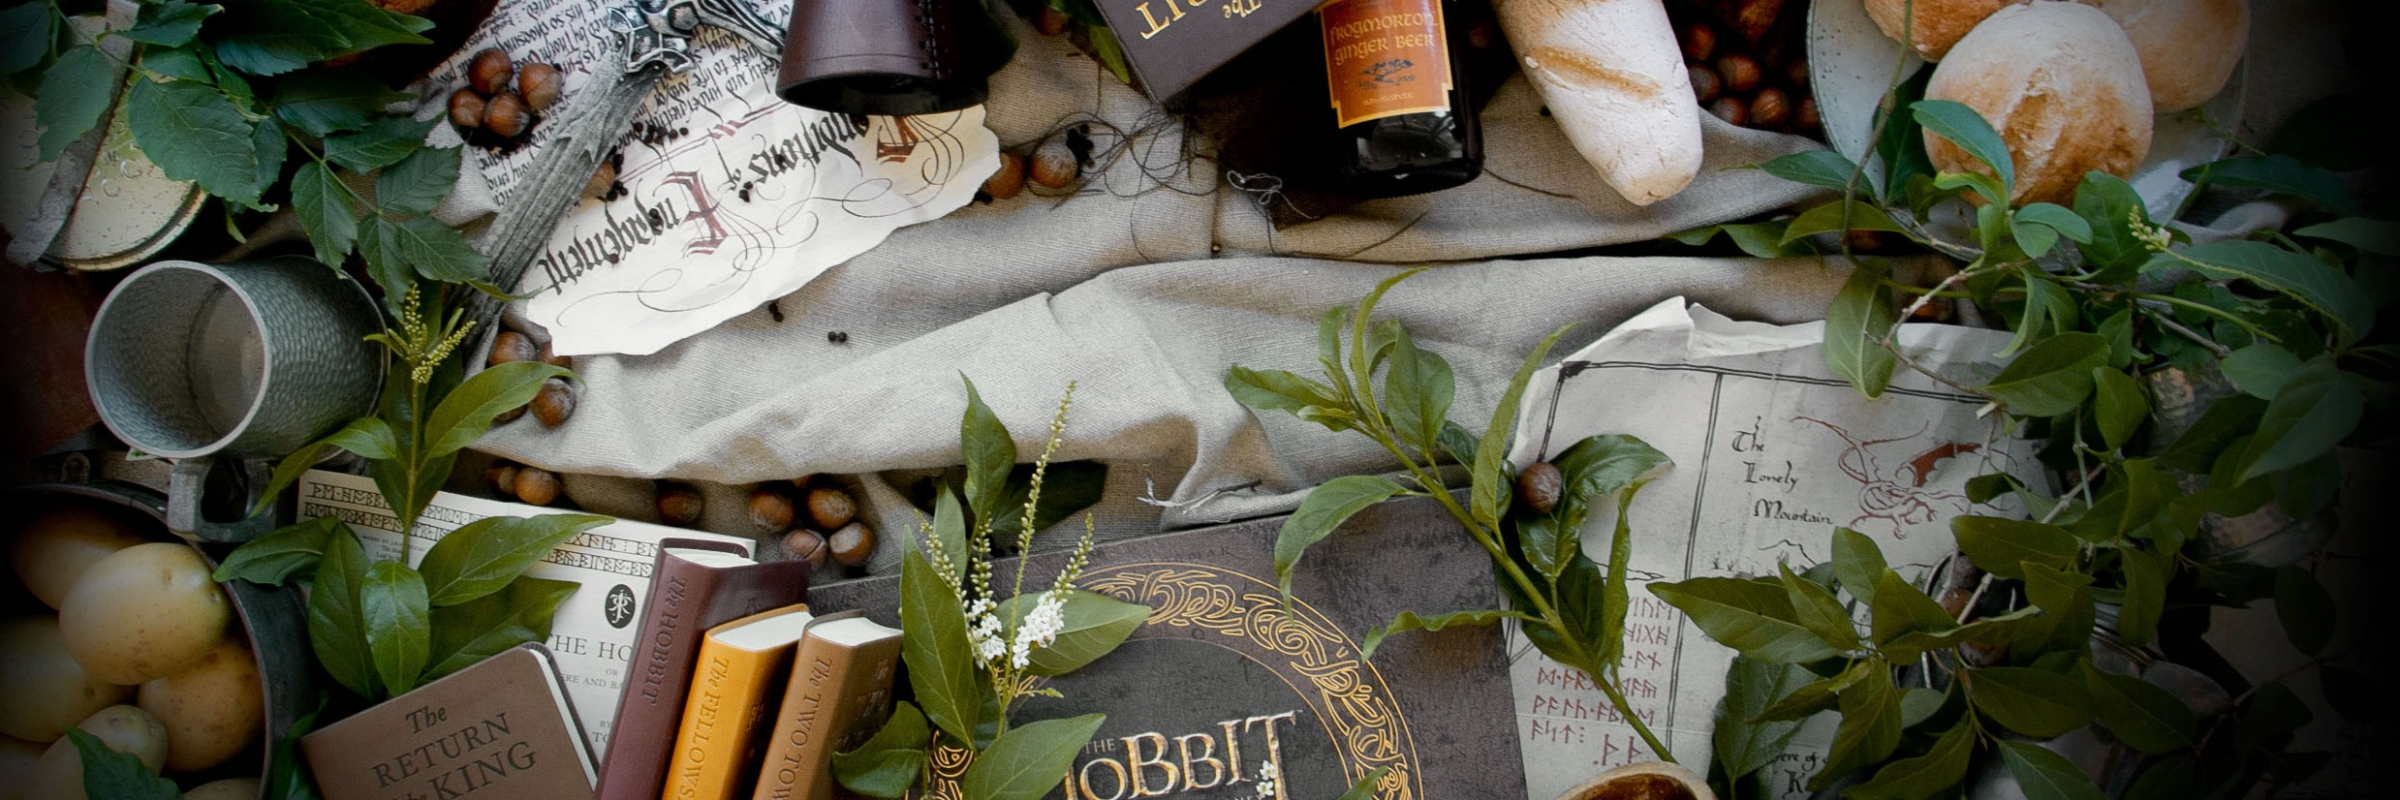 The-Hobbit-In-Literature-feature-image copy